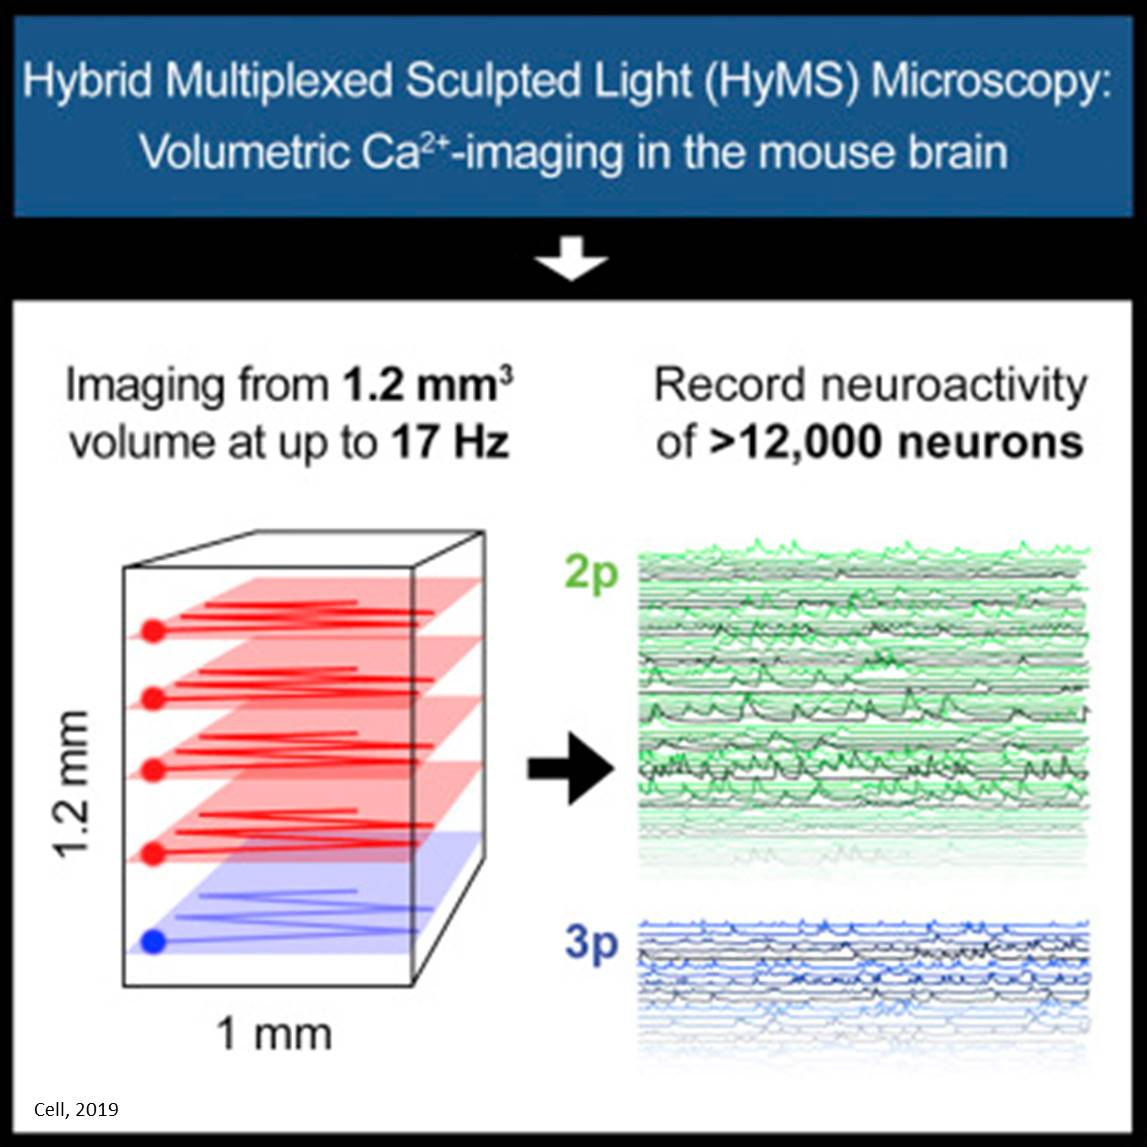 Hybrid multiplexed sculpted light microscopy (HyMS) to capture biological changes deep inside the brain